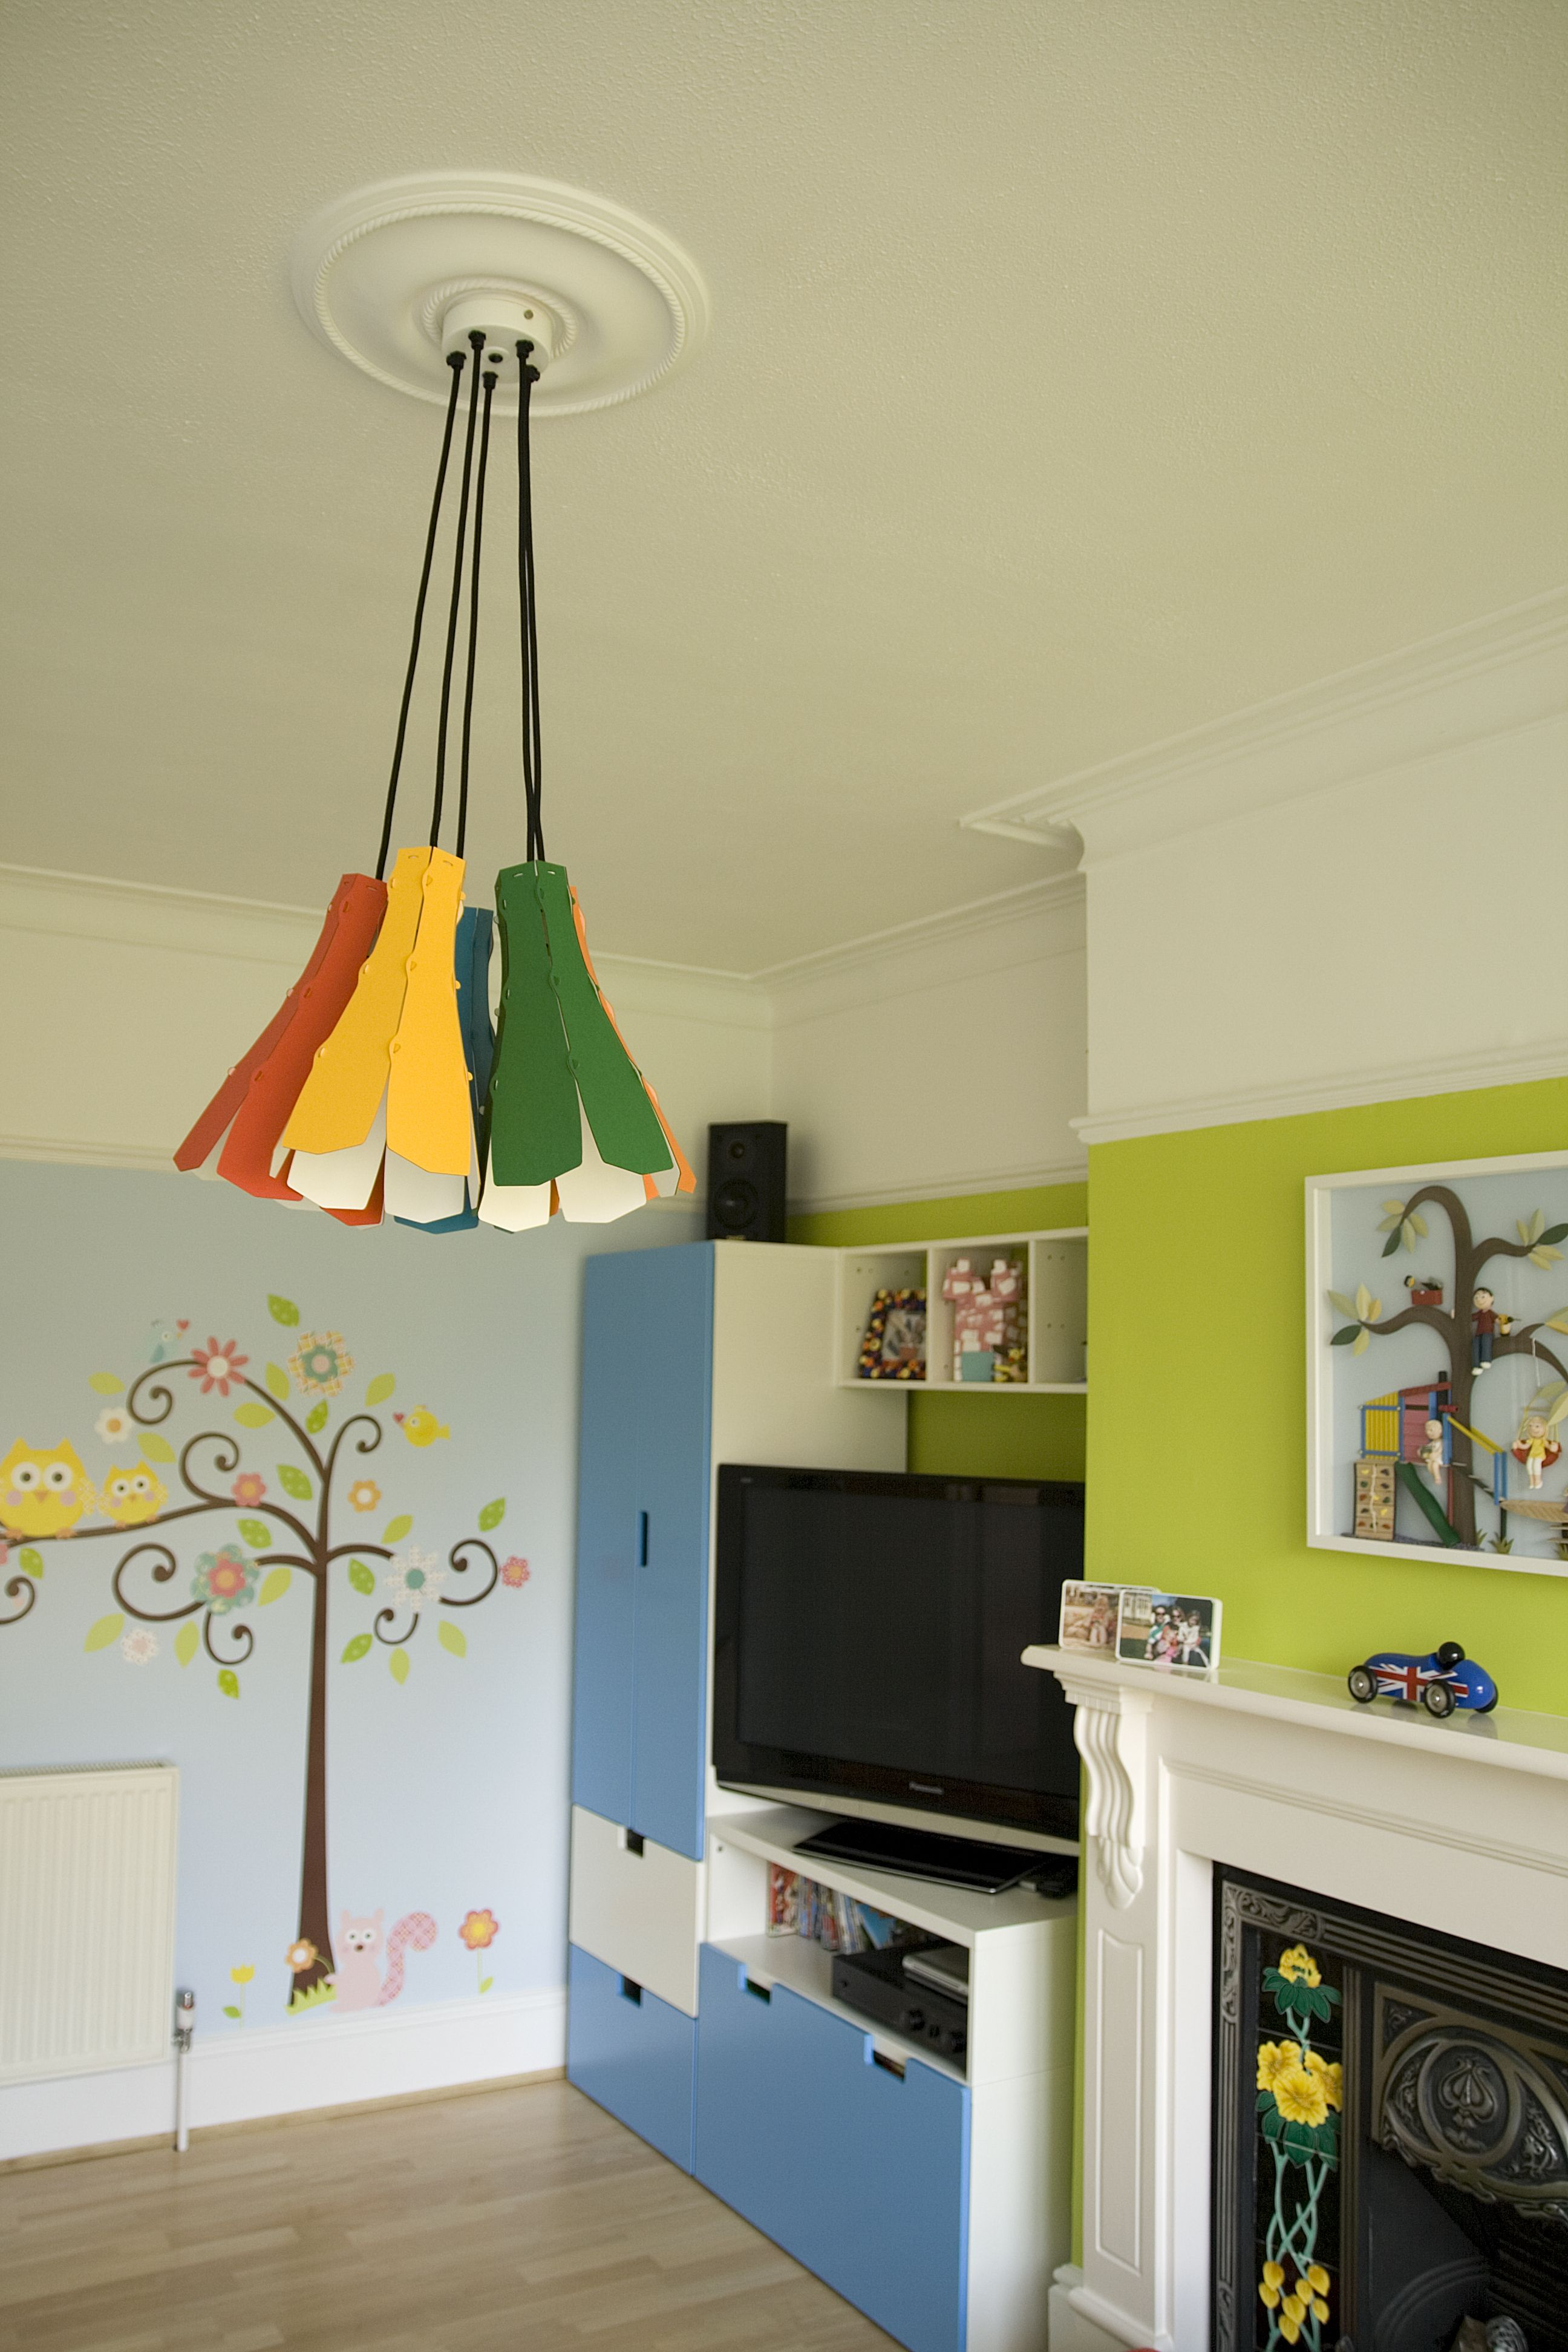 Lily Lights - Group Of 5 In A Playroom | Playroom, Decor